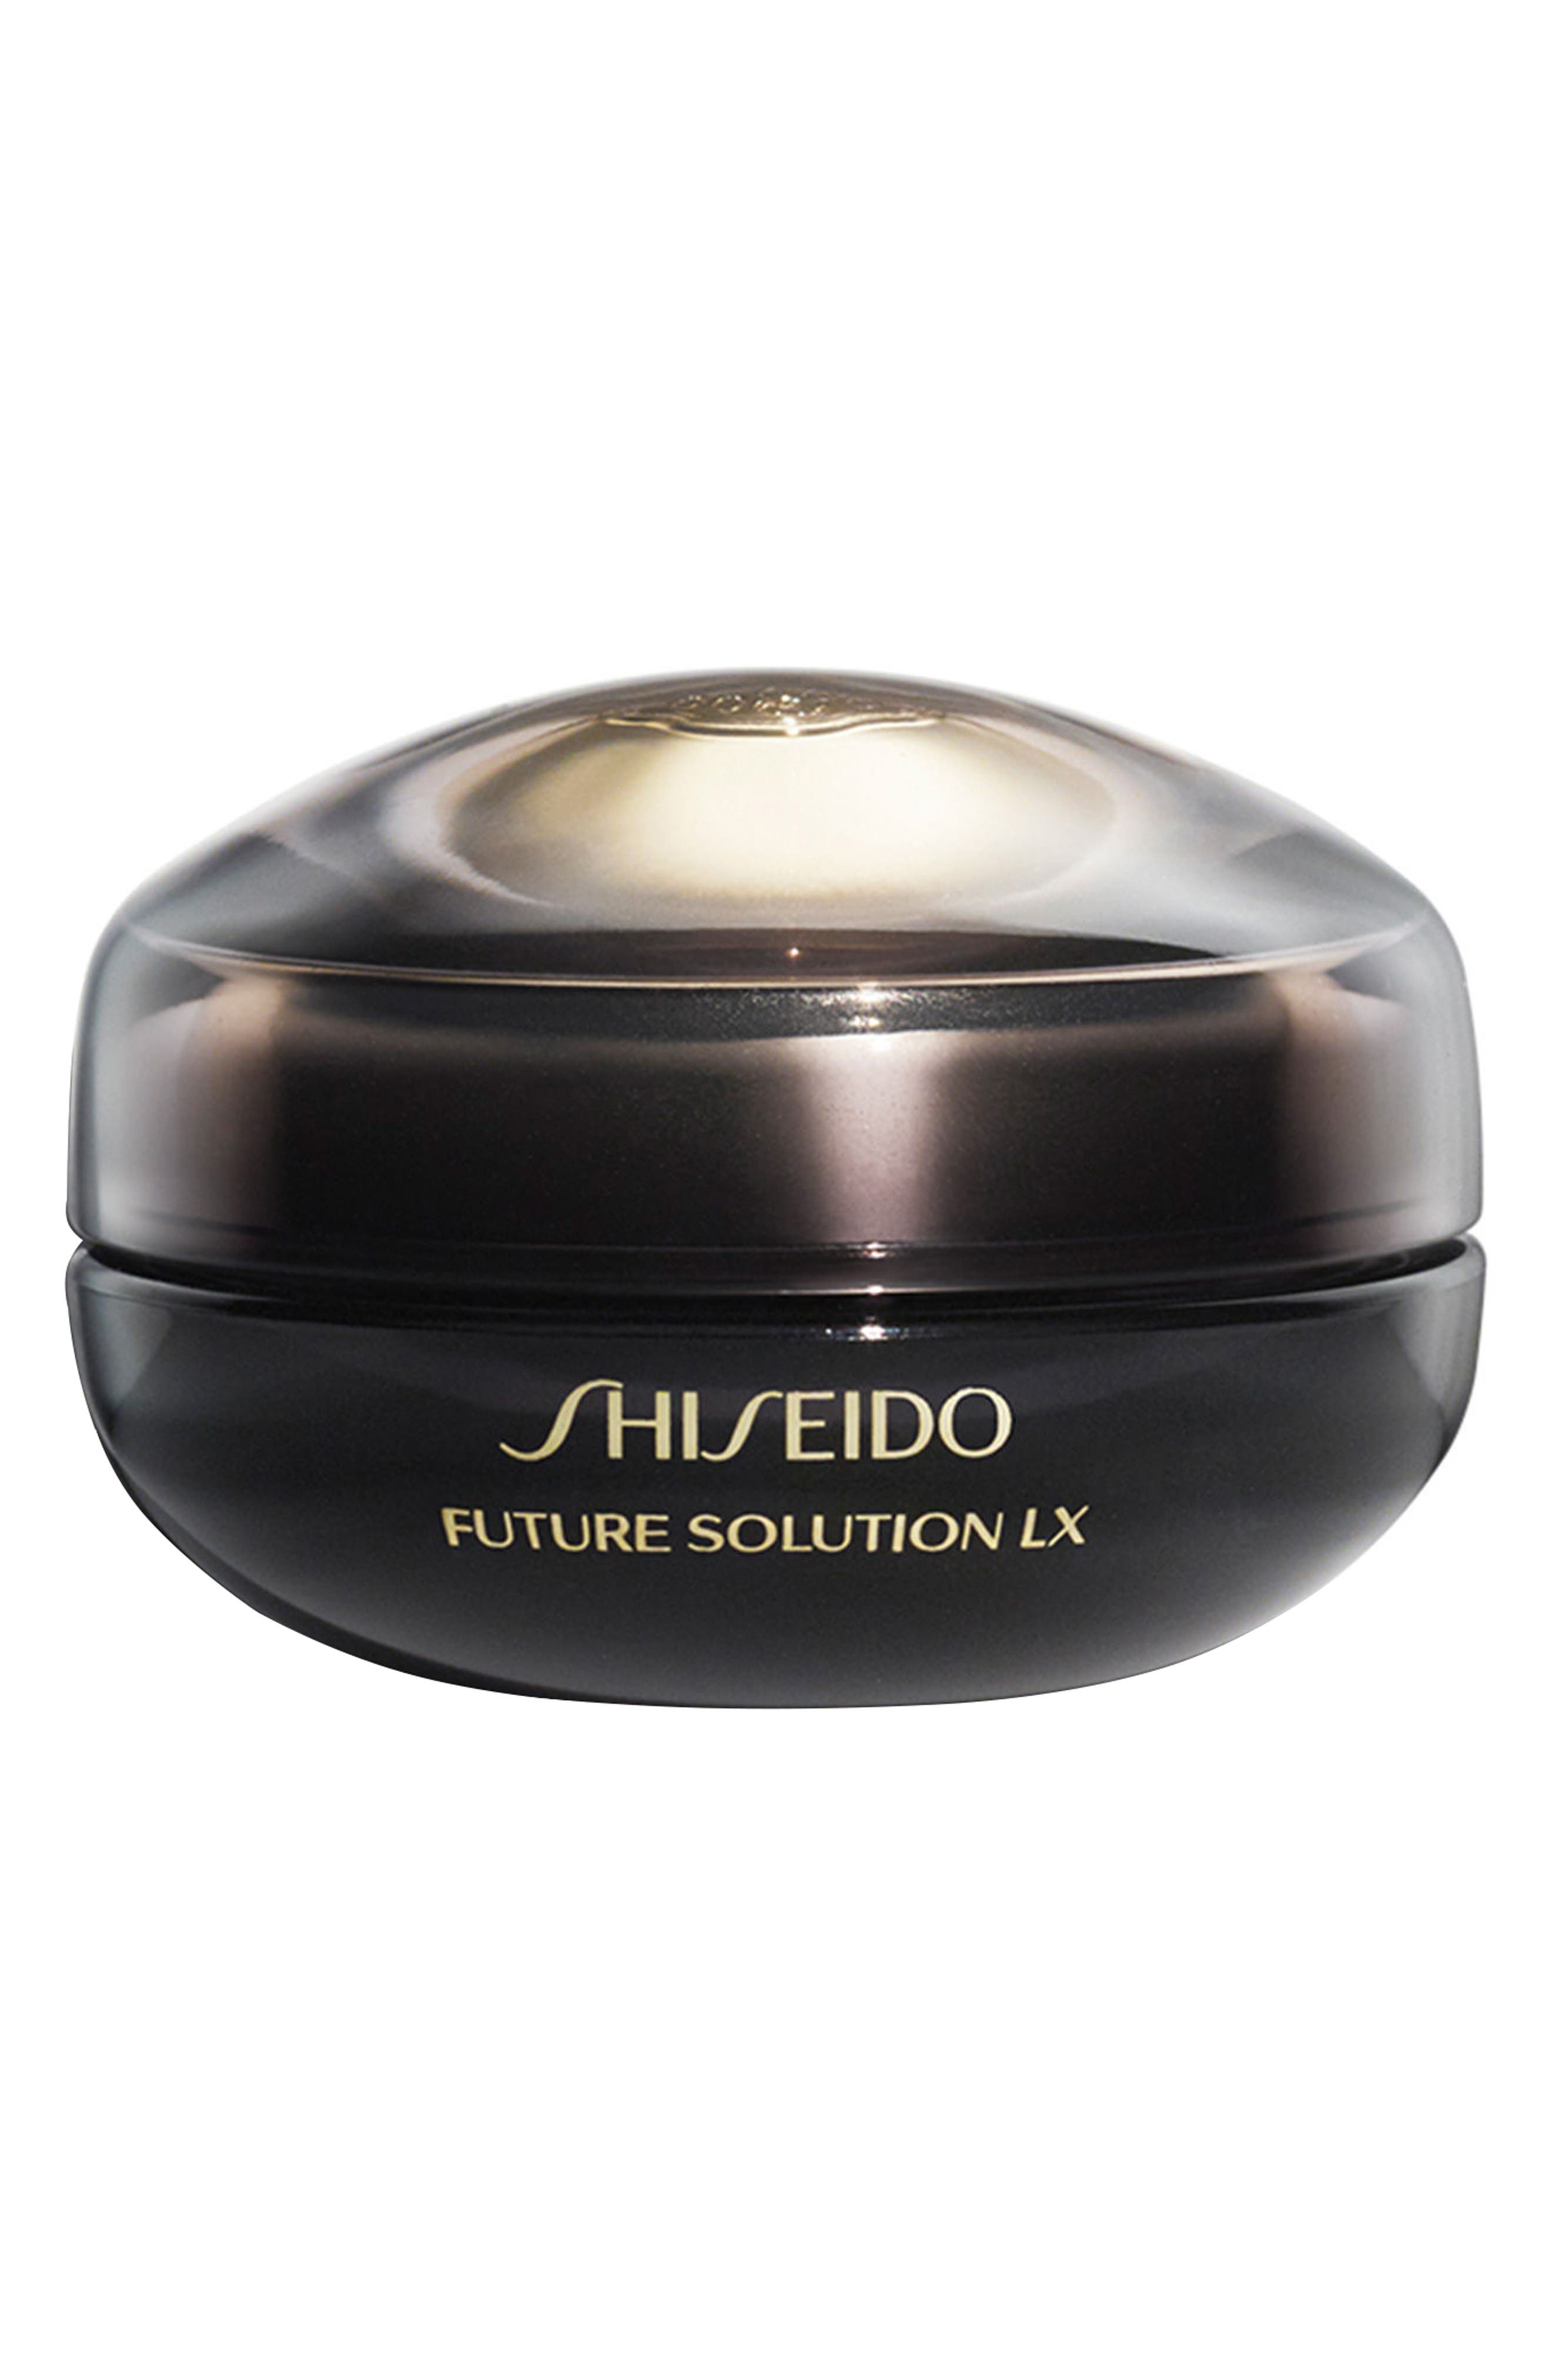 Shiseido Future Solution LX Eye & Lip Contour Regenerating Cream (Nordstrom Exclusive)